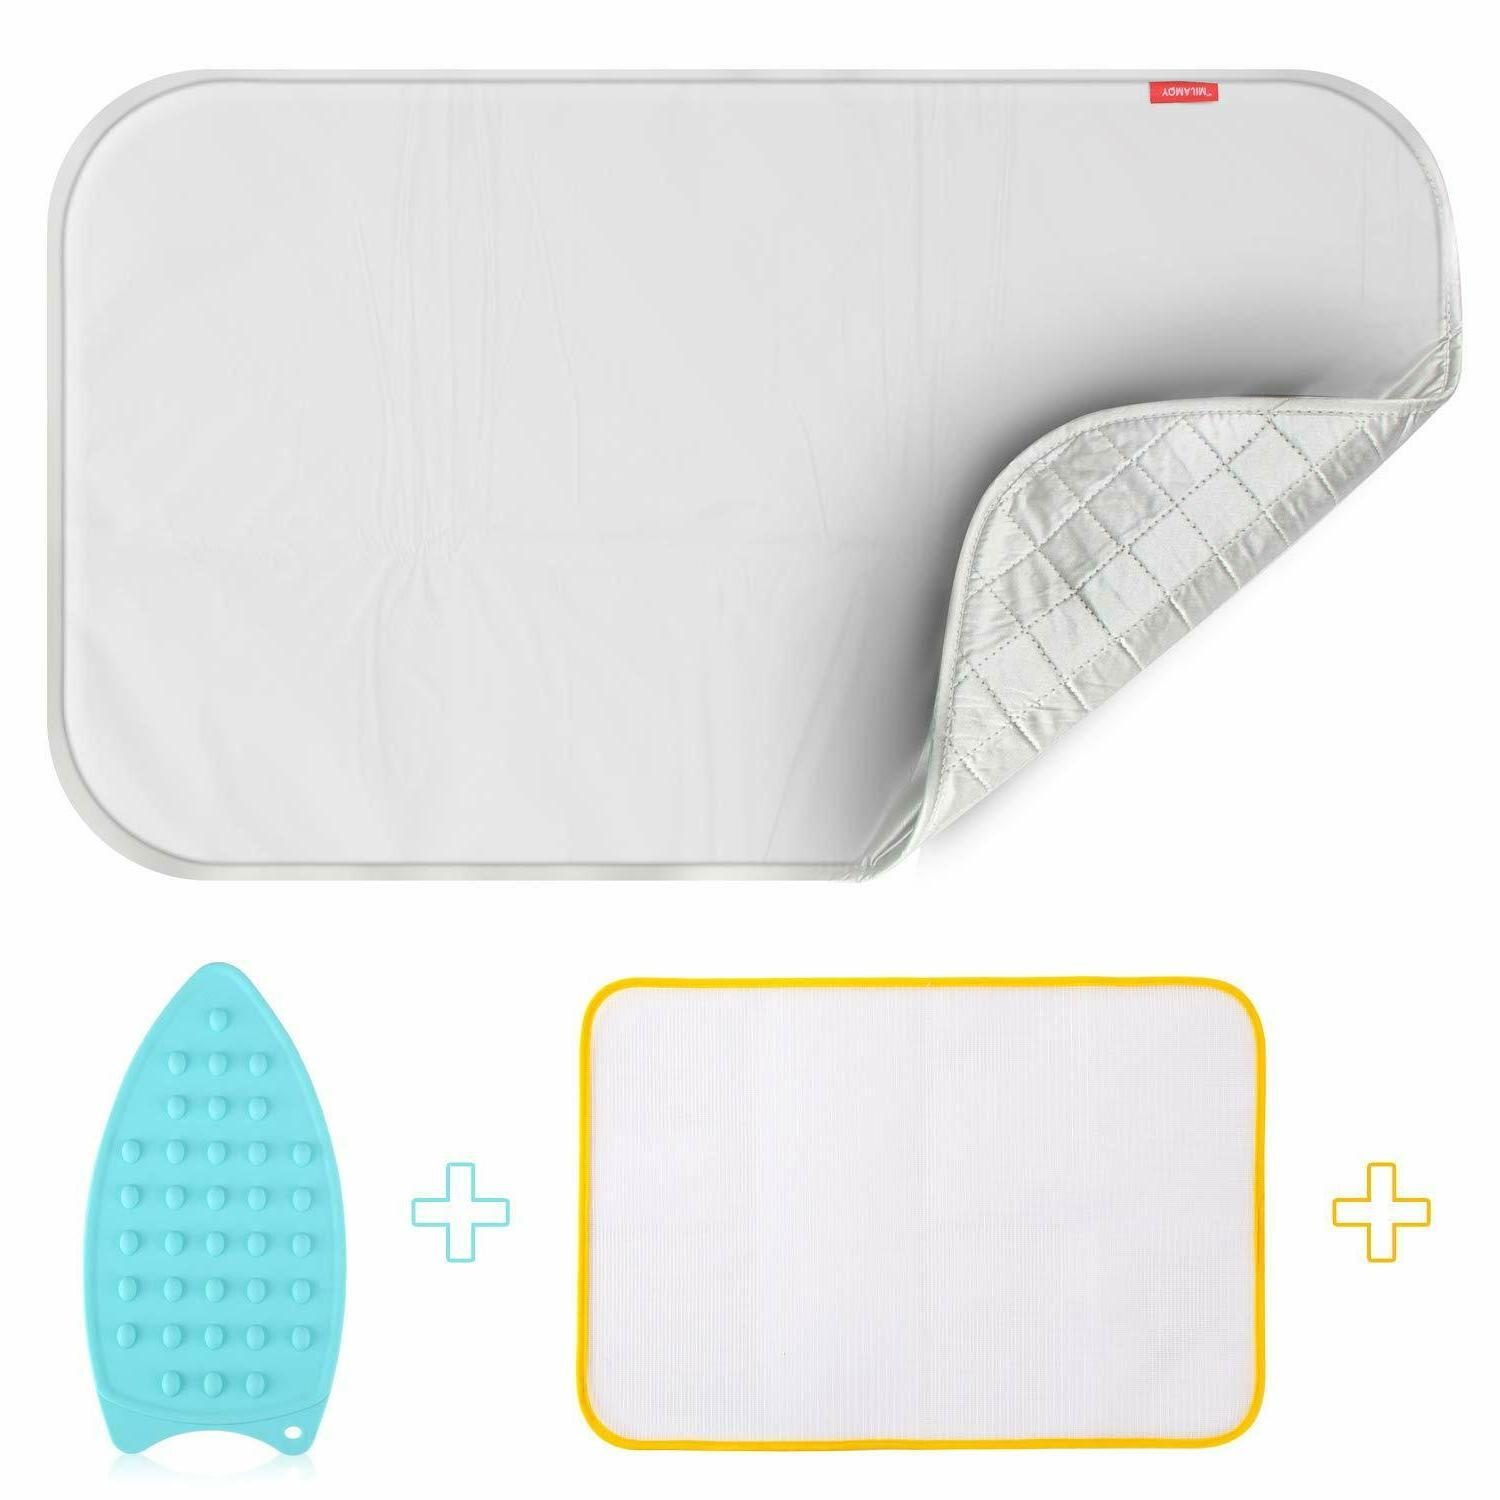 Real Simple® Ironing Board with Bonus Folding Board